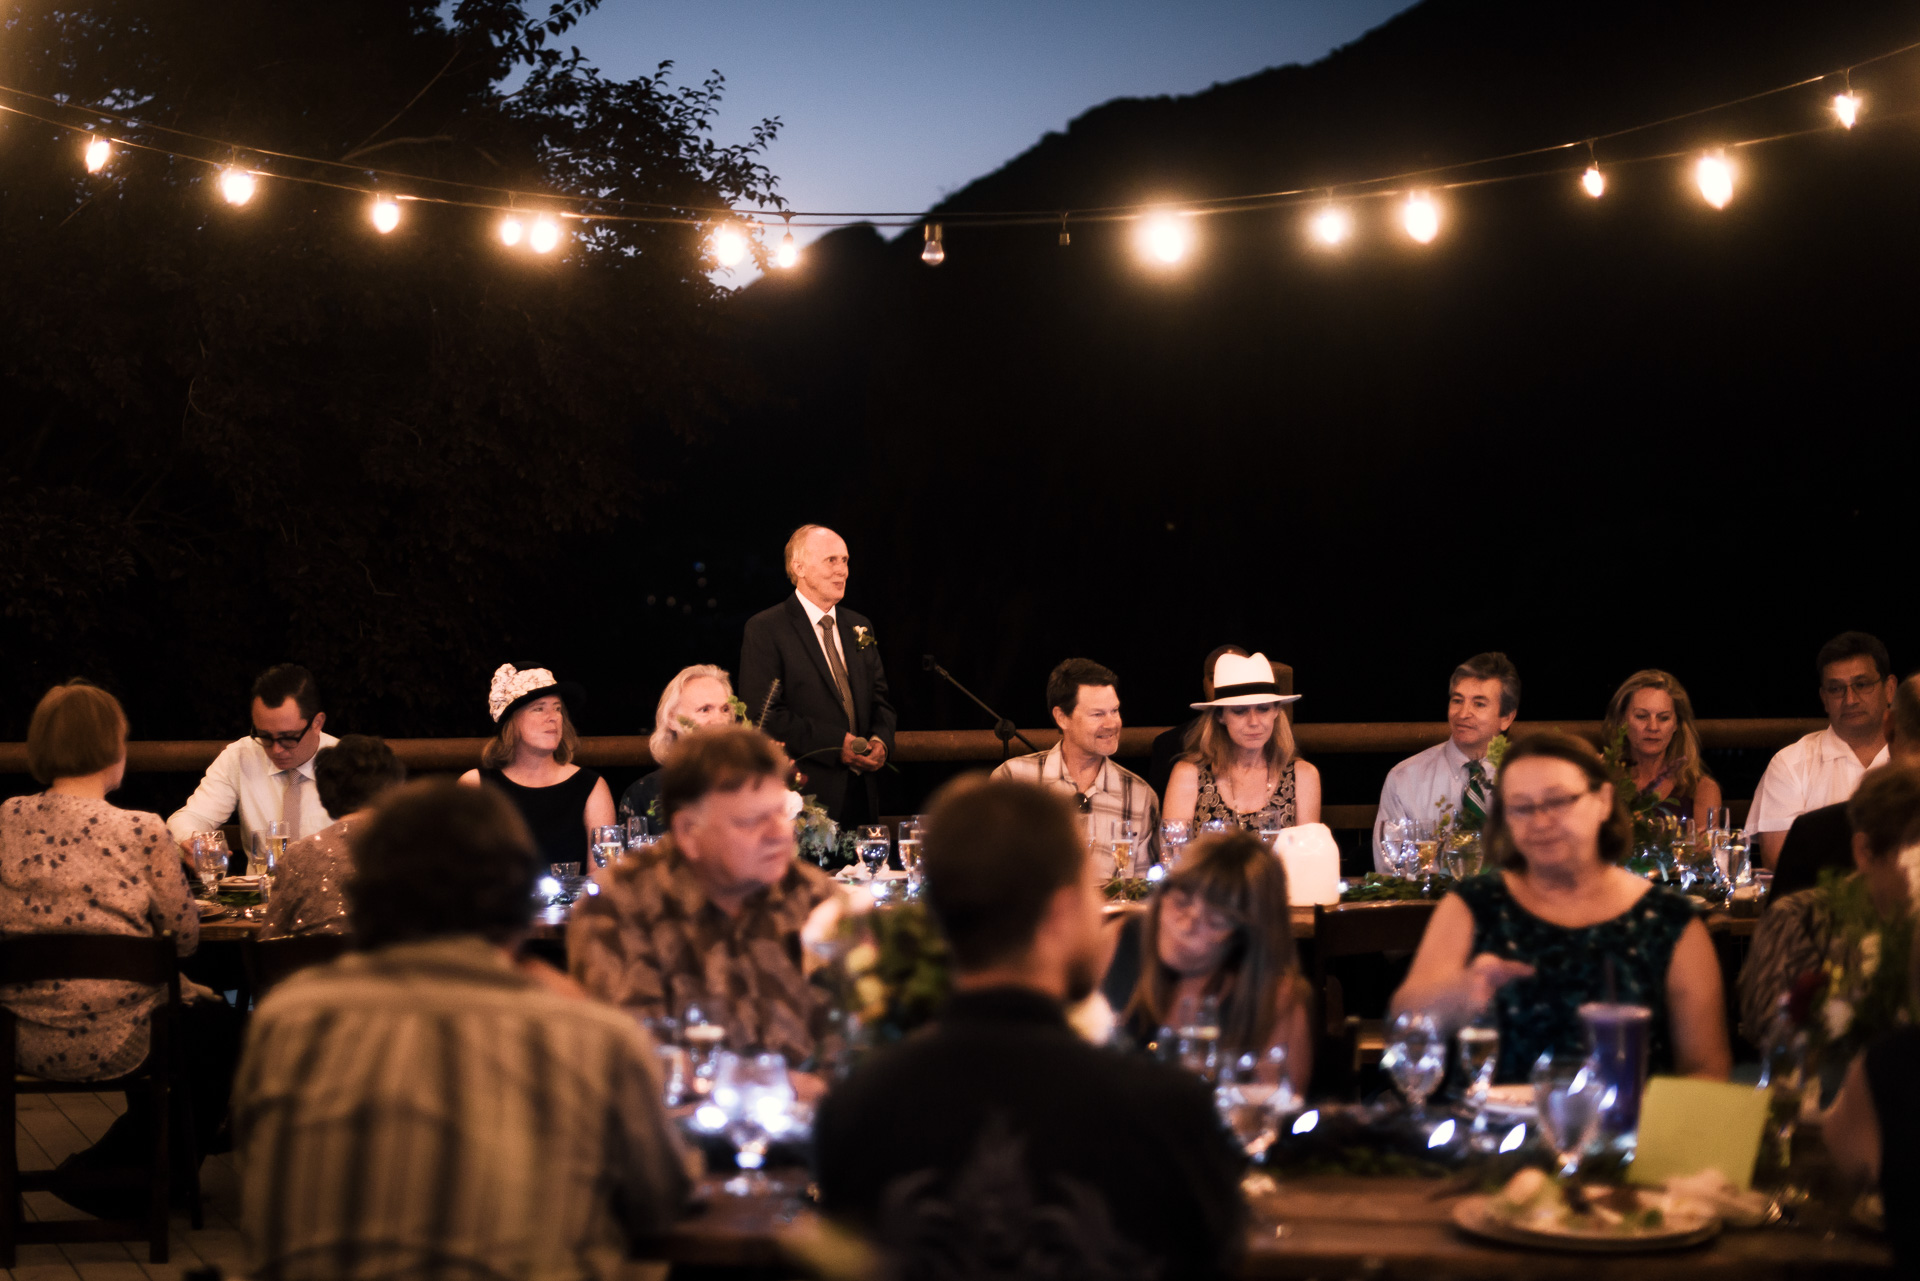 father of the bride makes a toast at the secret garden located at the Historic Parish ranch in Oak Glen California